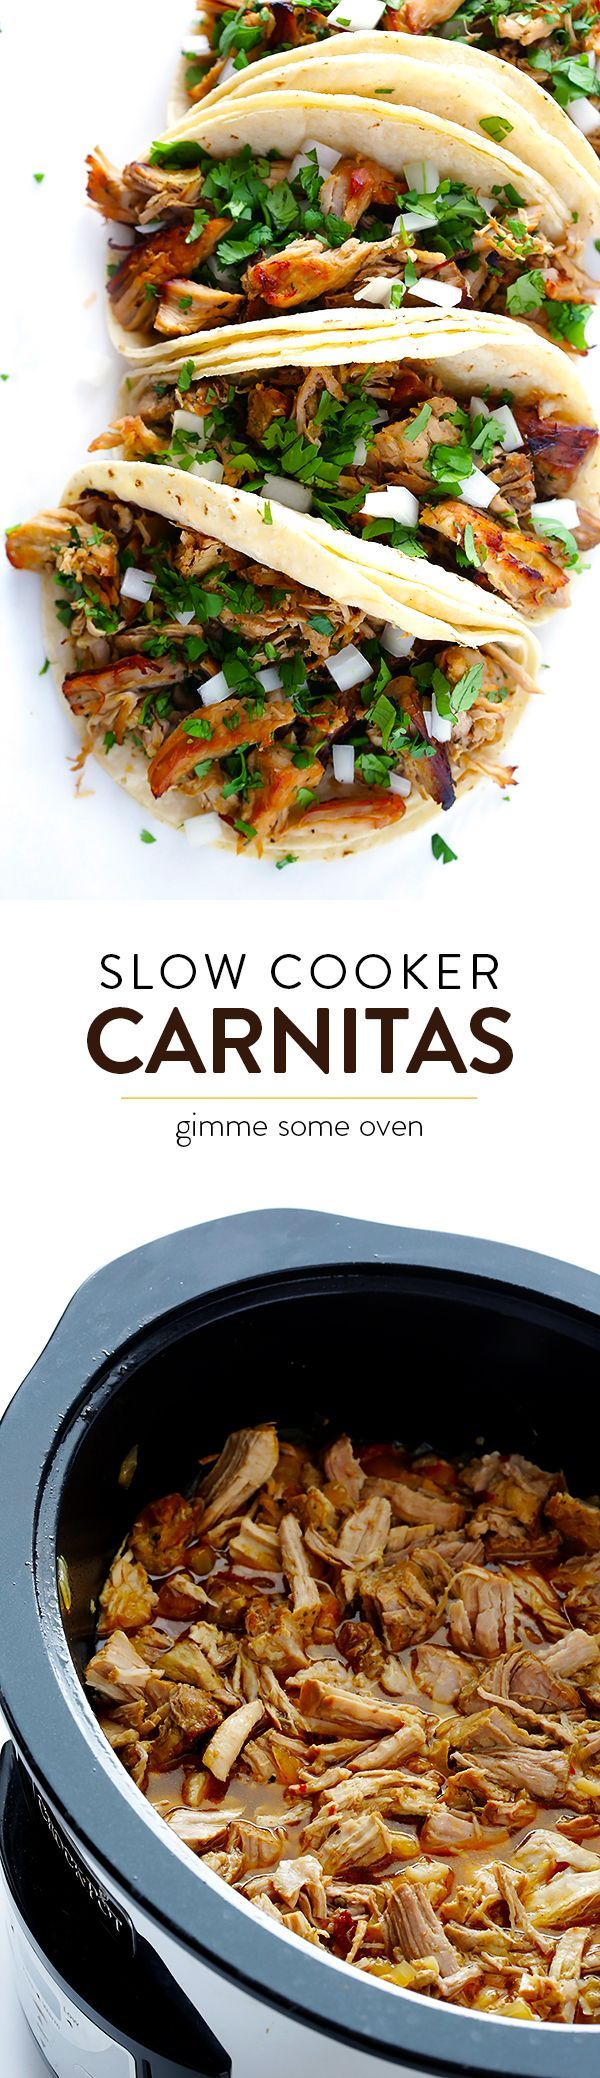 Crispy Slow Cooker Carnitas -- This favorite Mexican pork recipe is surprisingly easy to make in the crock pot, and it's perfectly tender, juicy, crispy, and SO delicious! Perfect for tacos, burritos, salads and more.